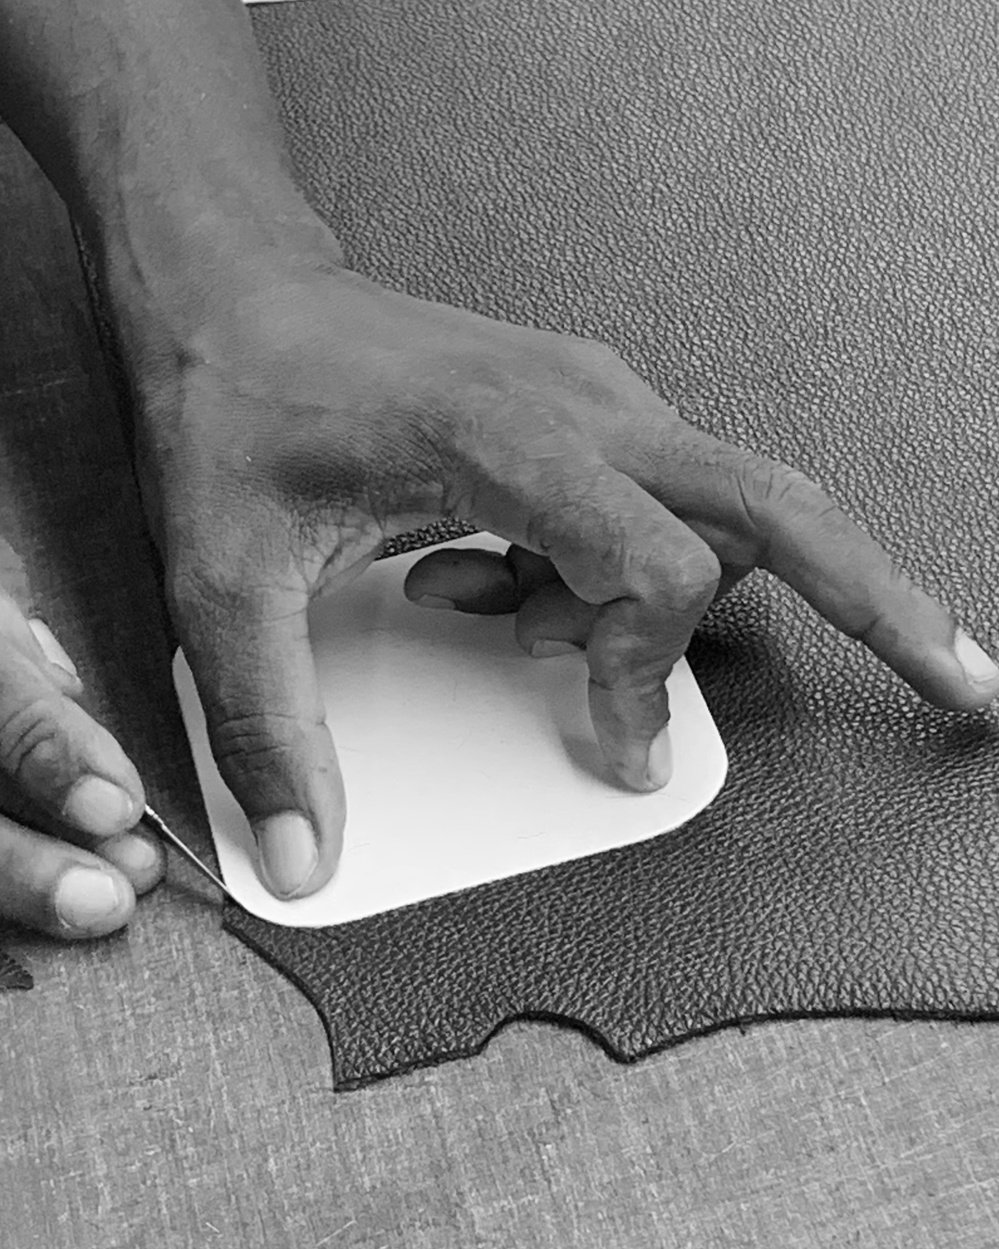 A black & white image of a master craftsman cutting leather to size.